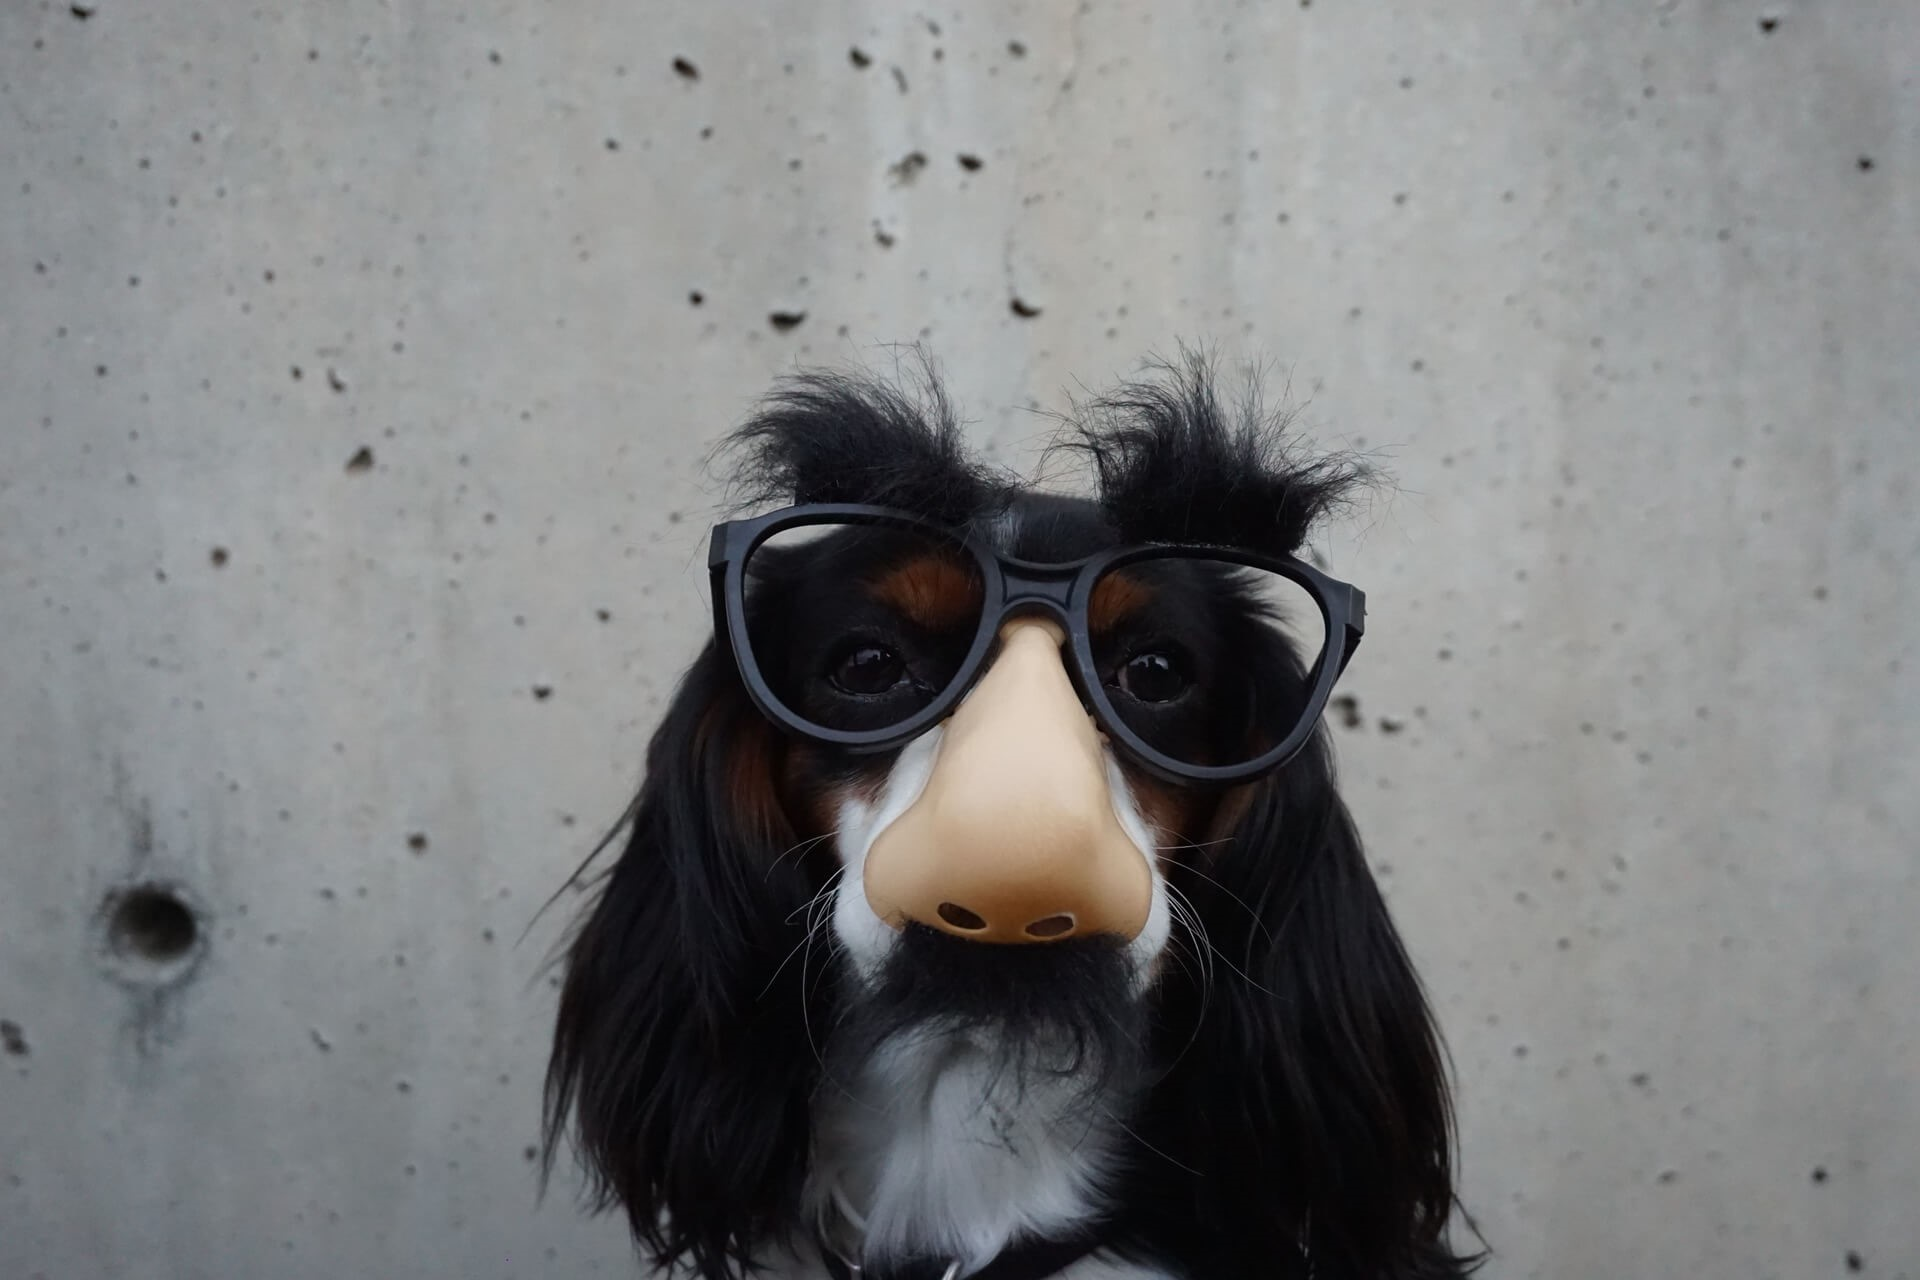 Glasses will not prevent dog eyelid conditions